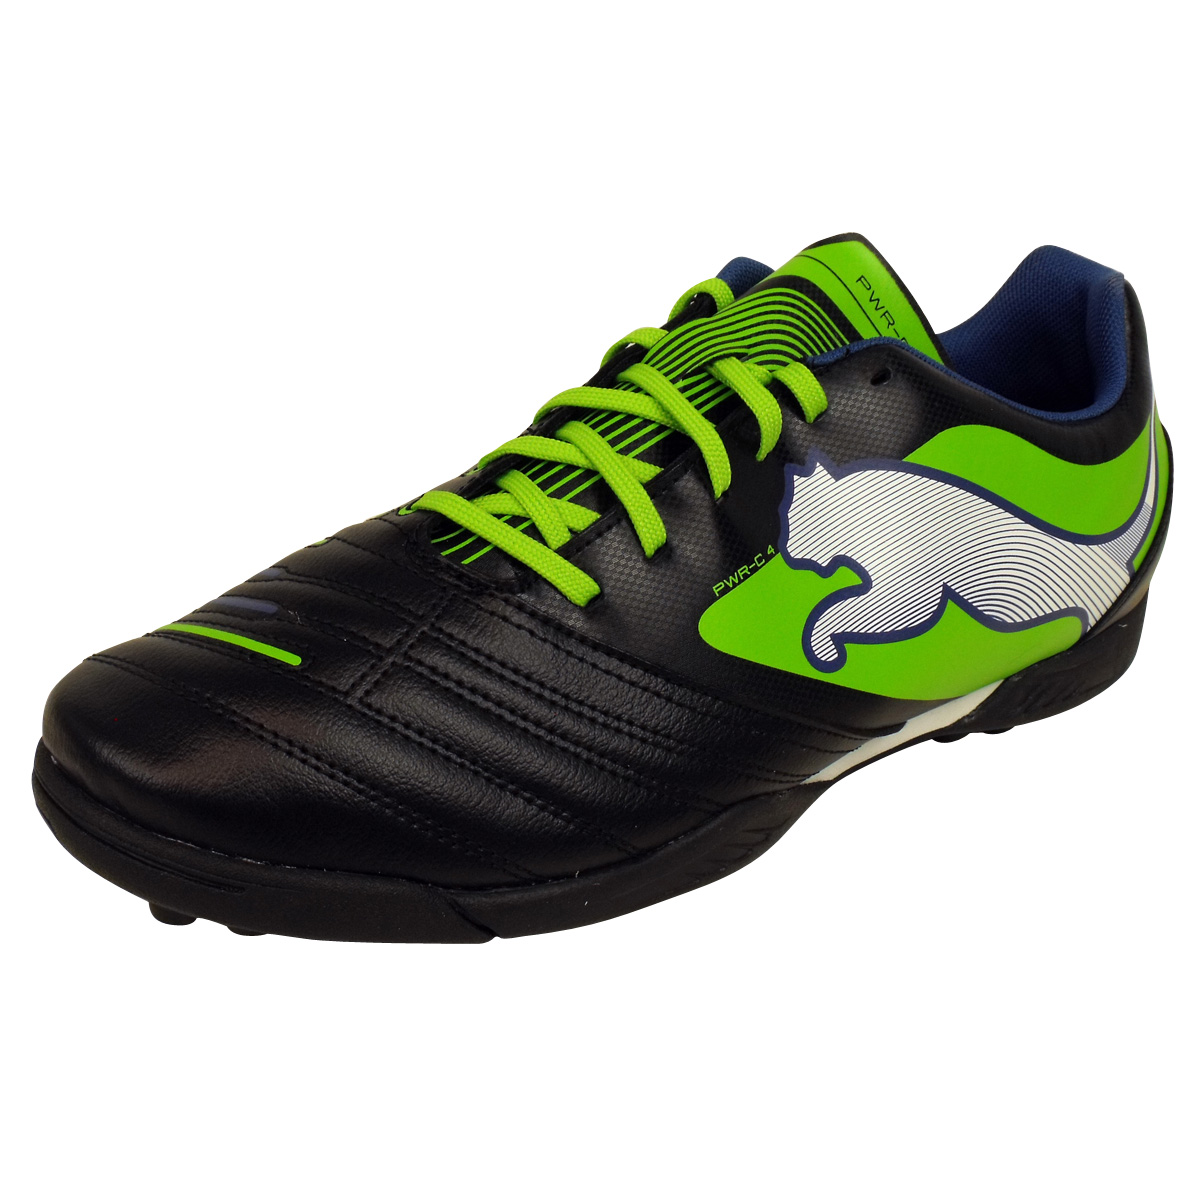 Mens-Puma-Powercat-4-TT-Black-Football-Astro-Turf-Trainer-Soccer-Trainers-Astros